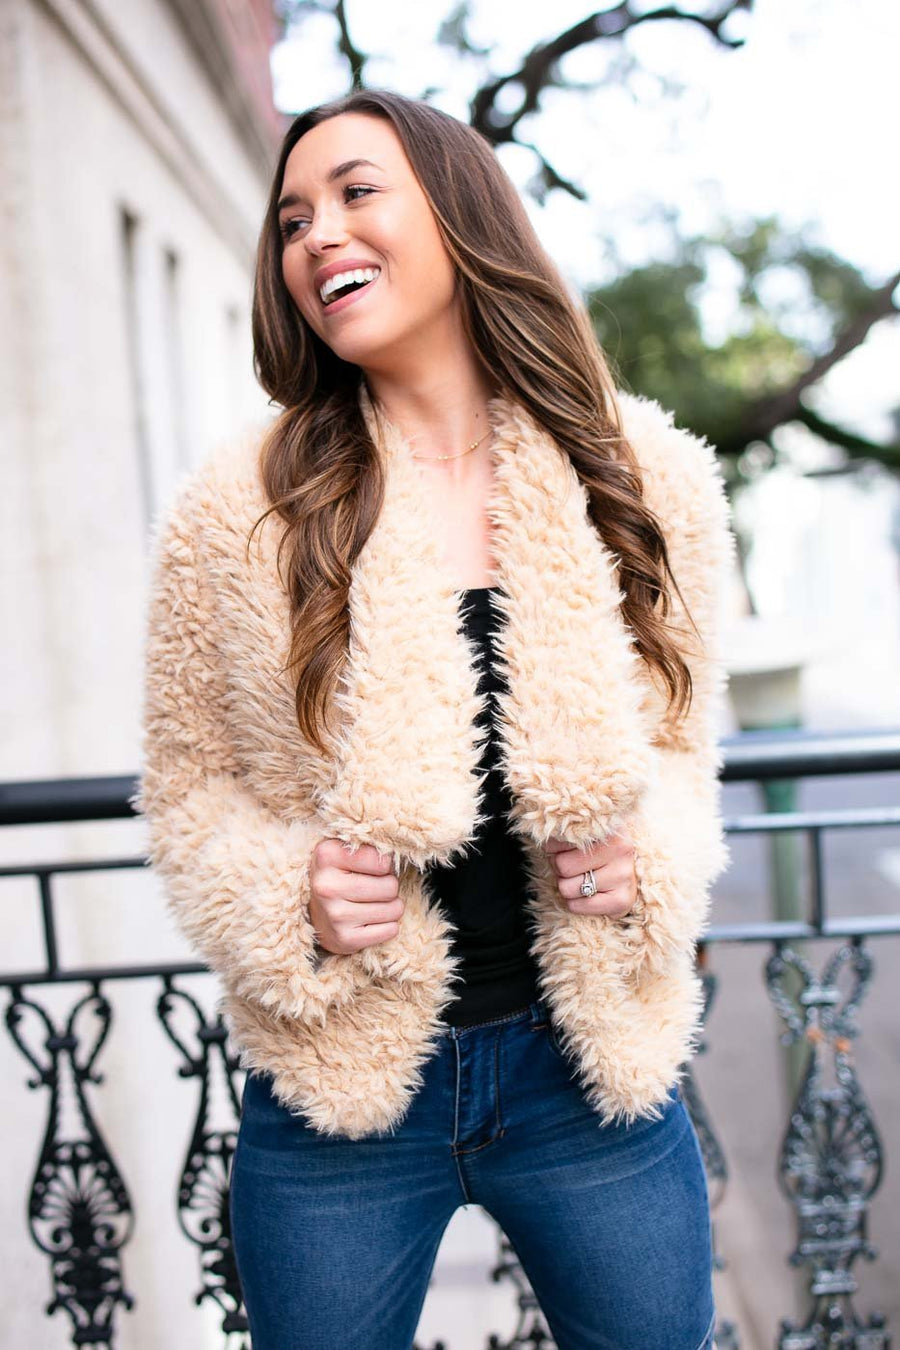 Light Tan Teddy Bear Jacket